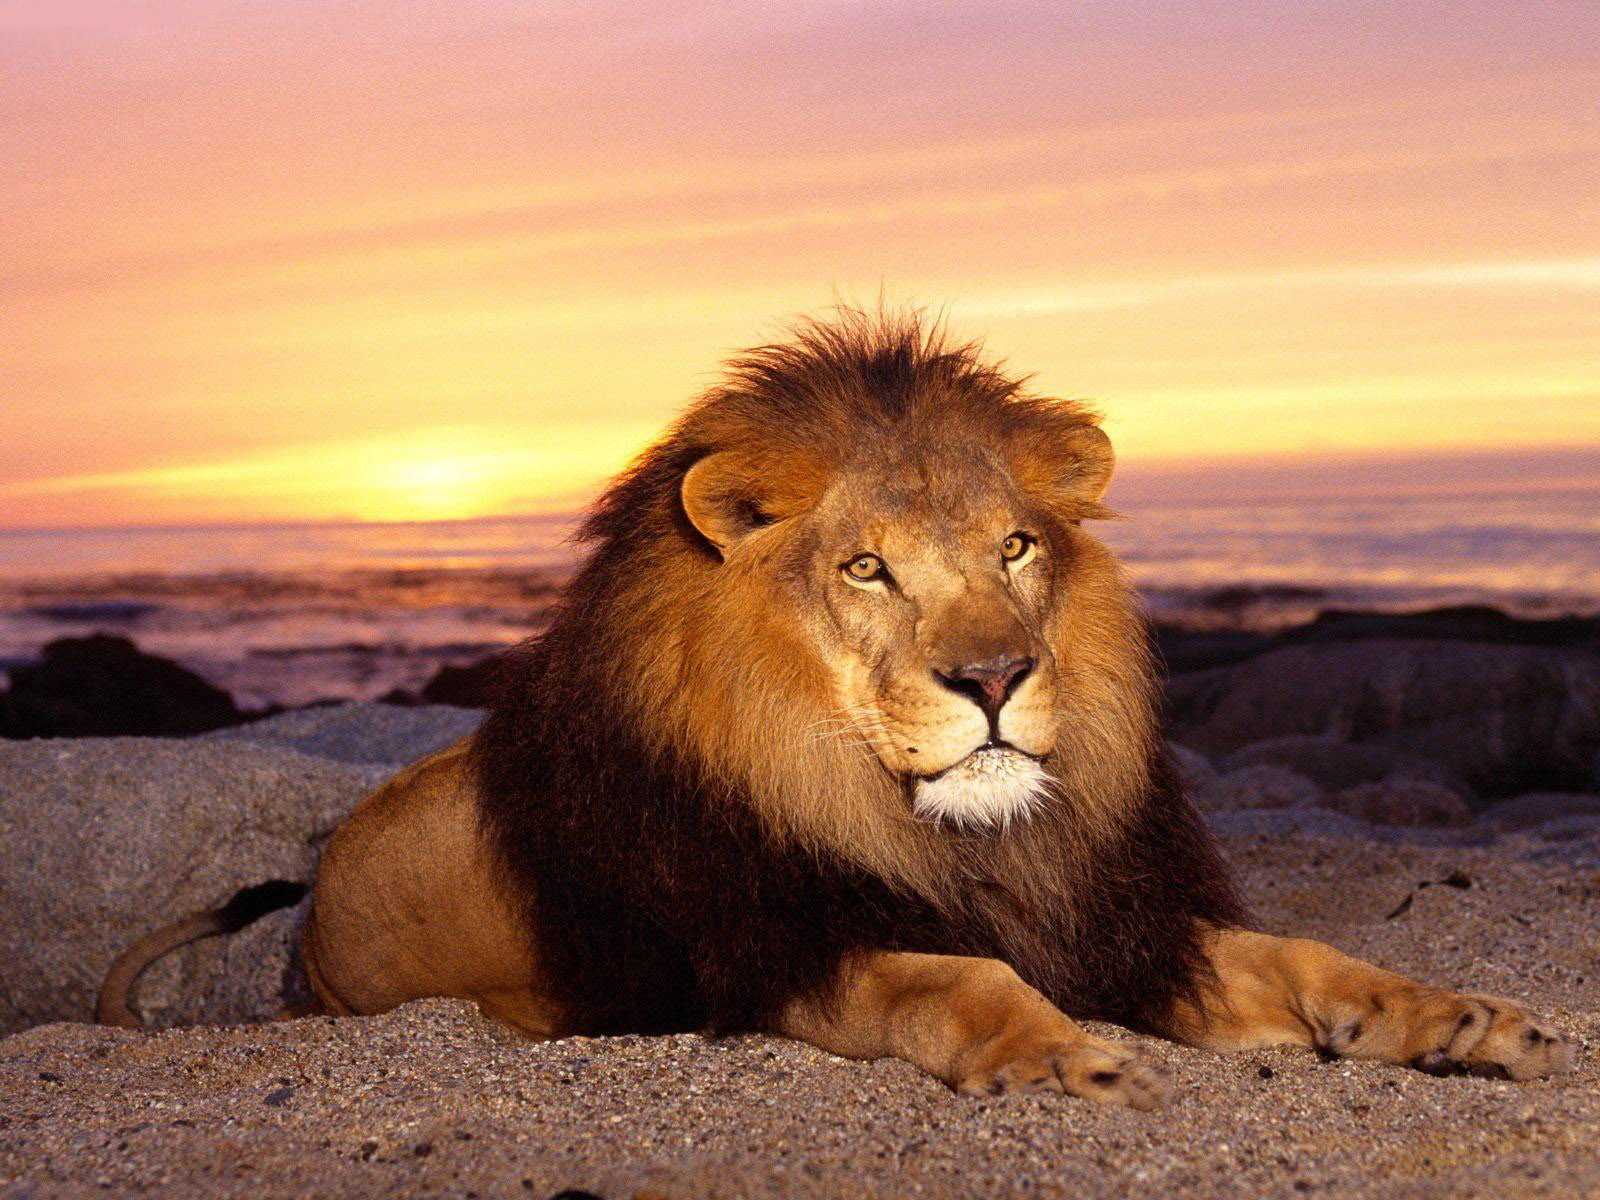 Hd Animal Wallpapers Hd Lion Wallpapers Pictures Of Lions